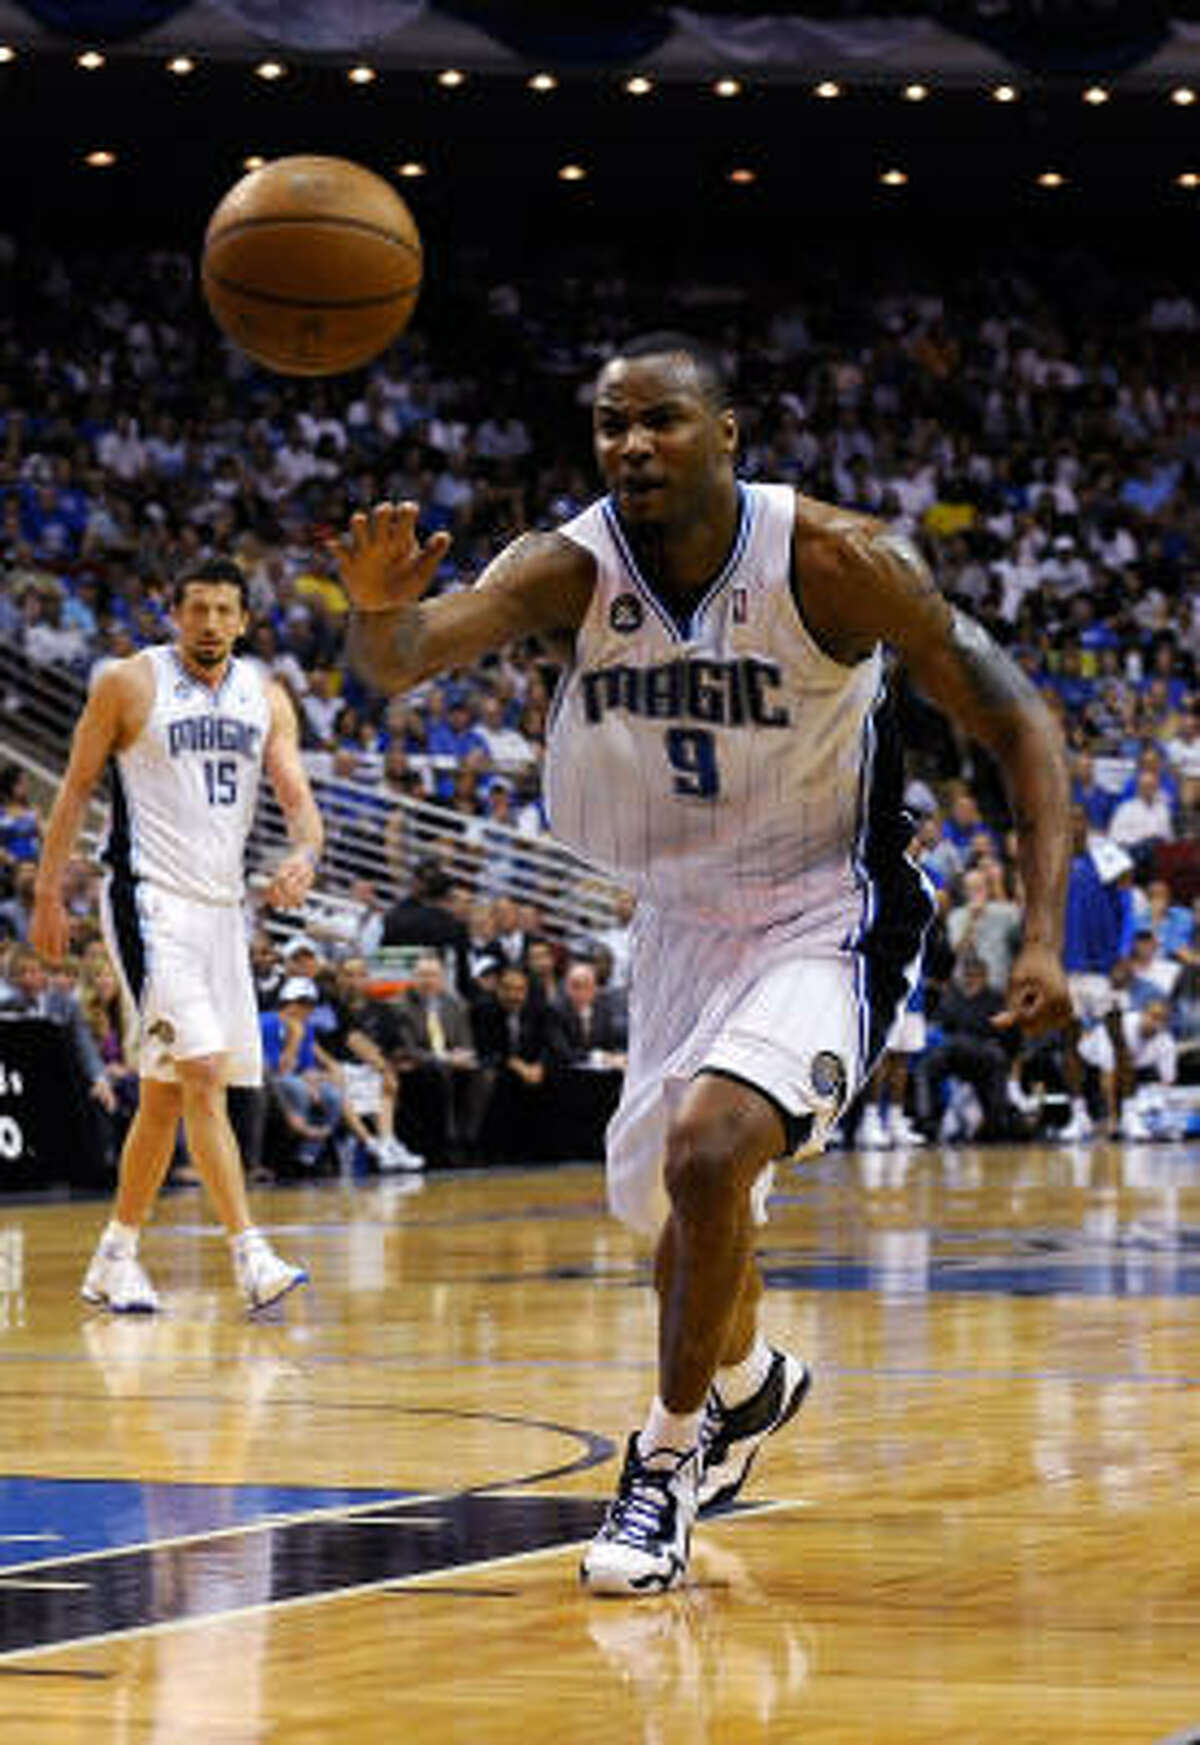 Rashard Lewis of the Orlando Magic reaches for a loose ball against the Philadelphia 76ers. The Magic beat the Sixers 96-87 to make the series tied 1-1.